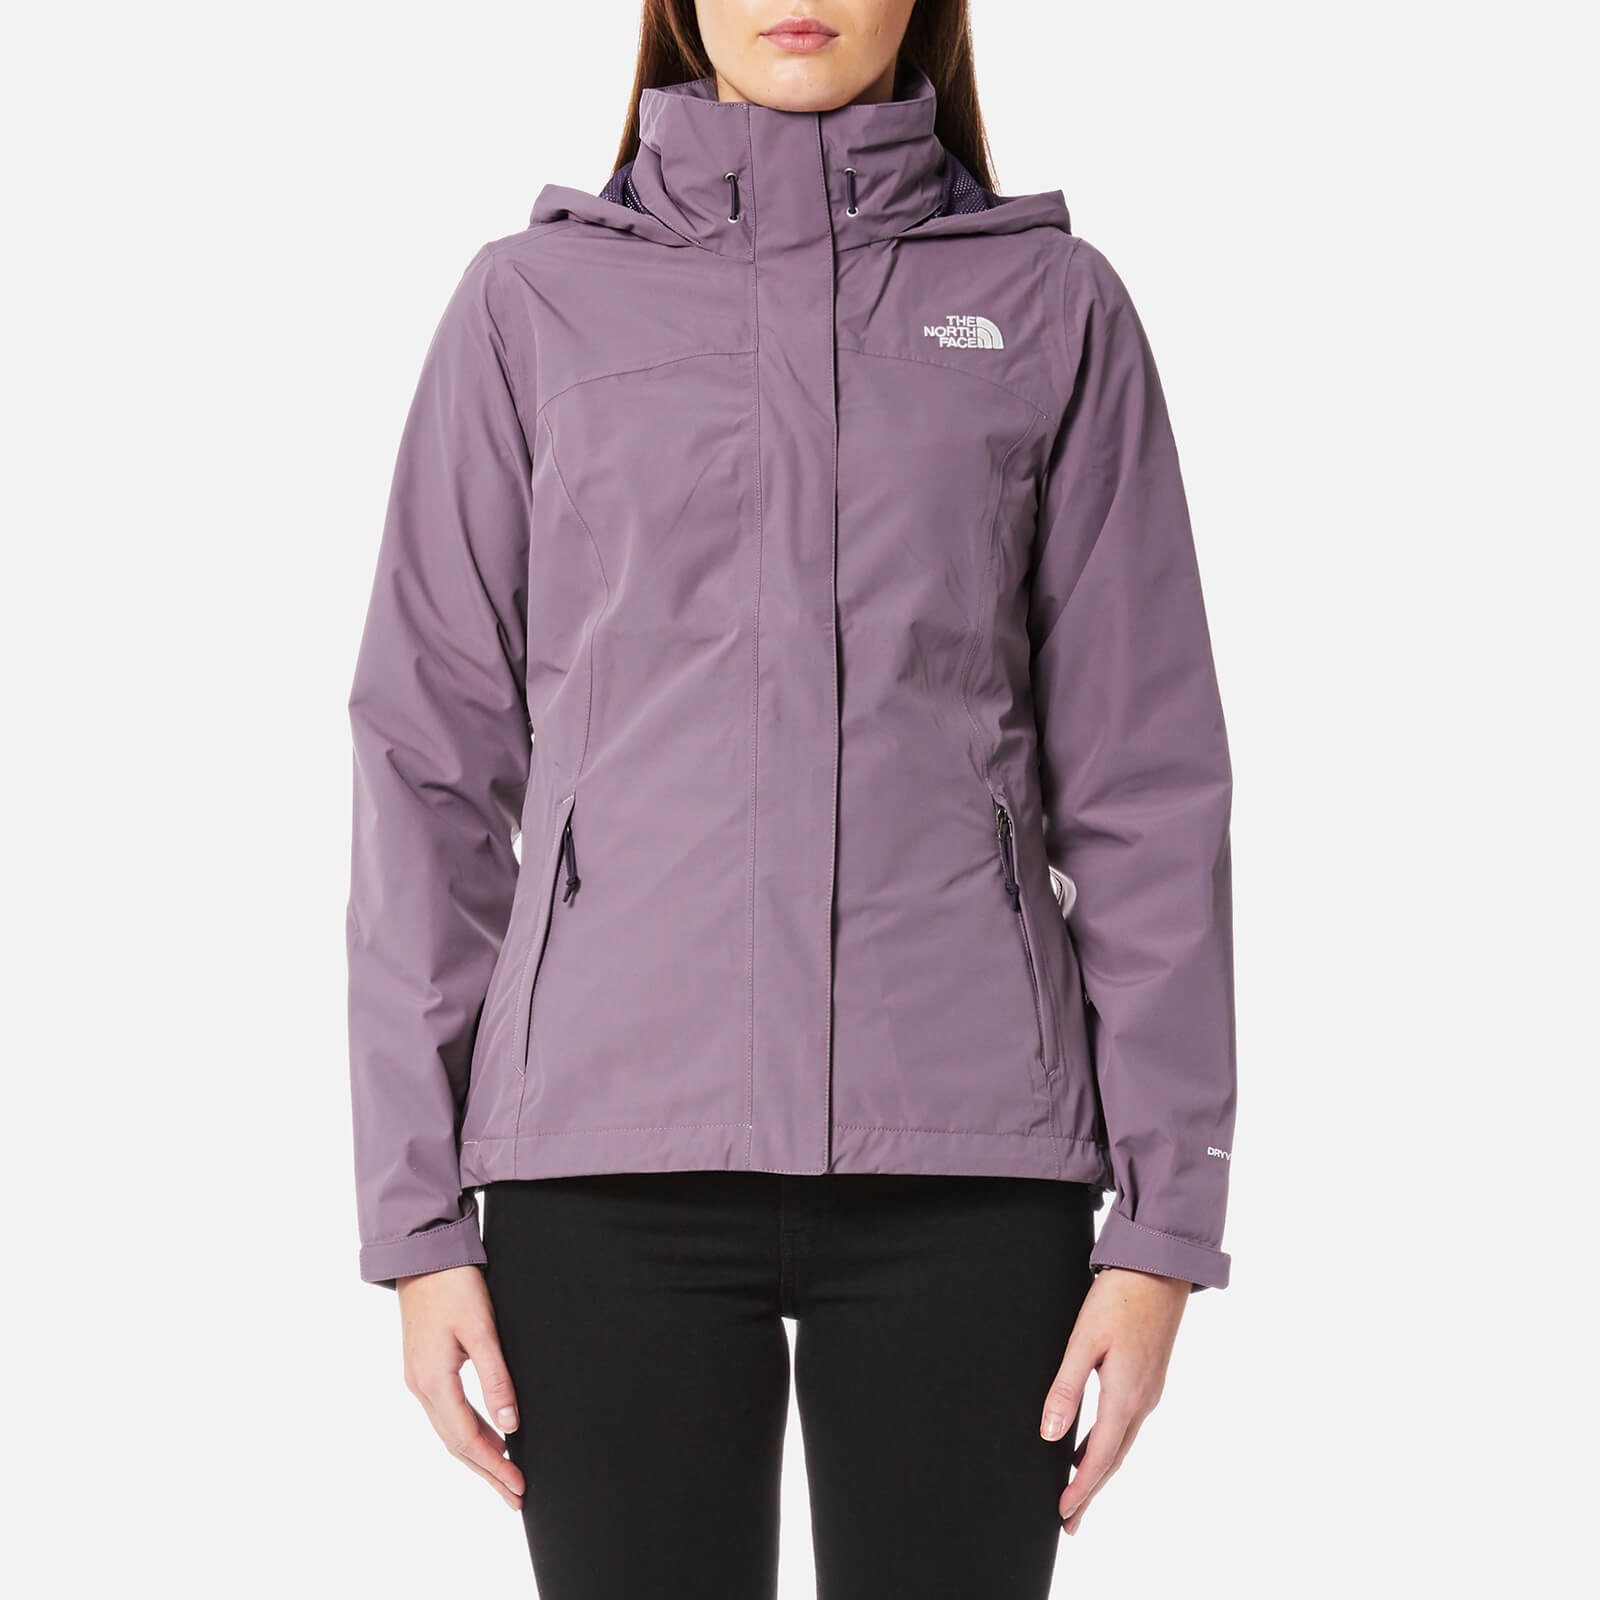 faedc4834b34 The North Face Women s Sangro Jacket - Black Plum Womens Clothing ...